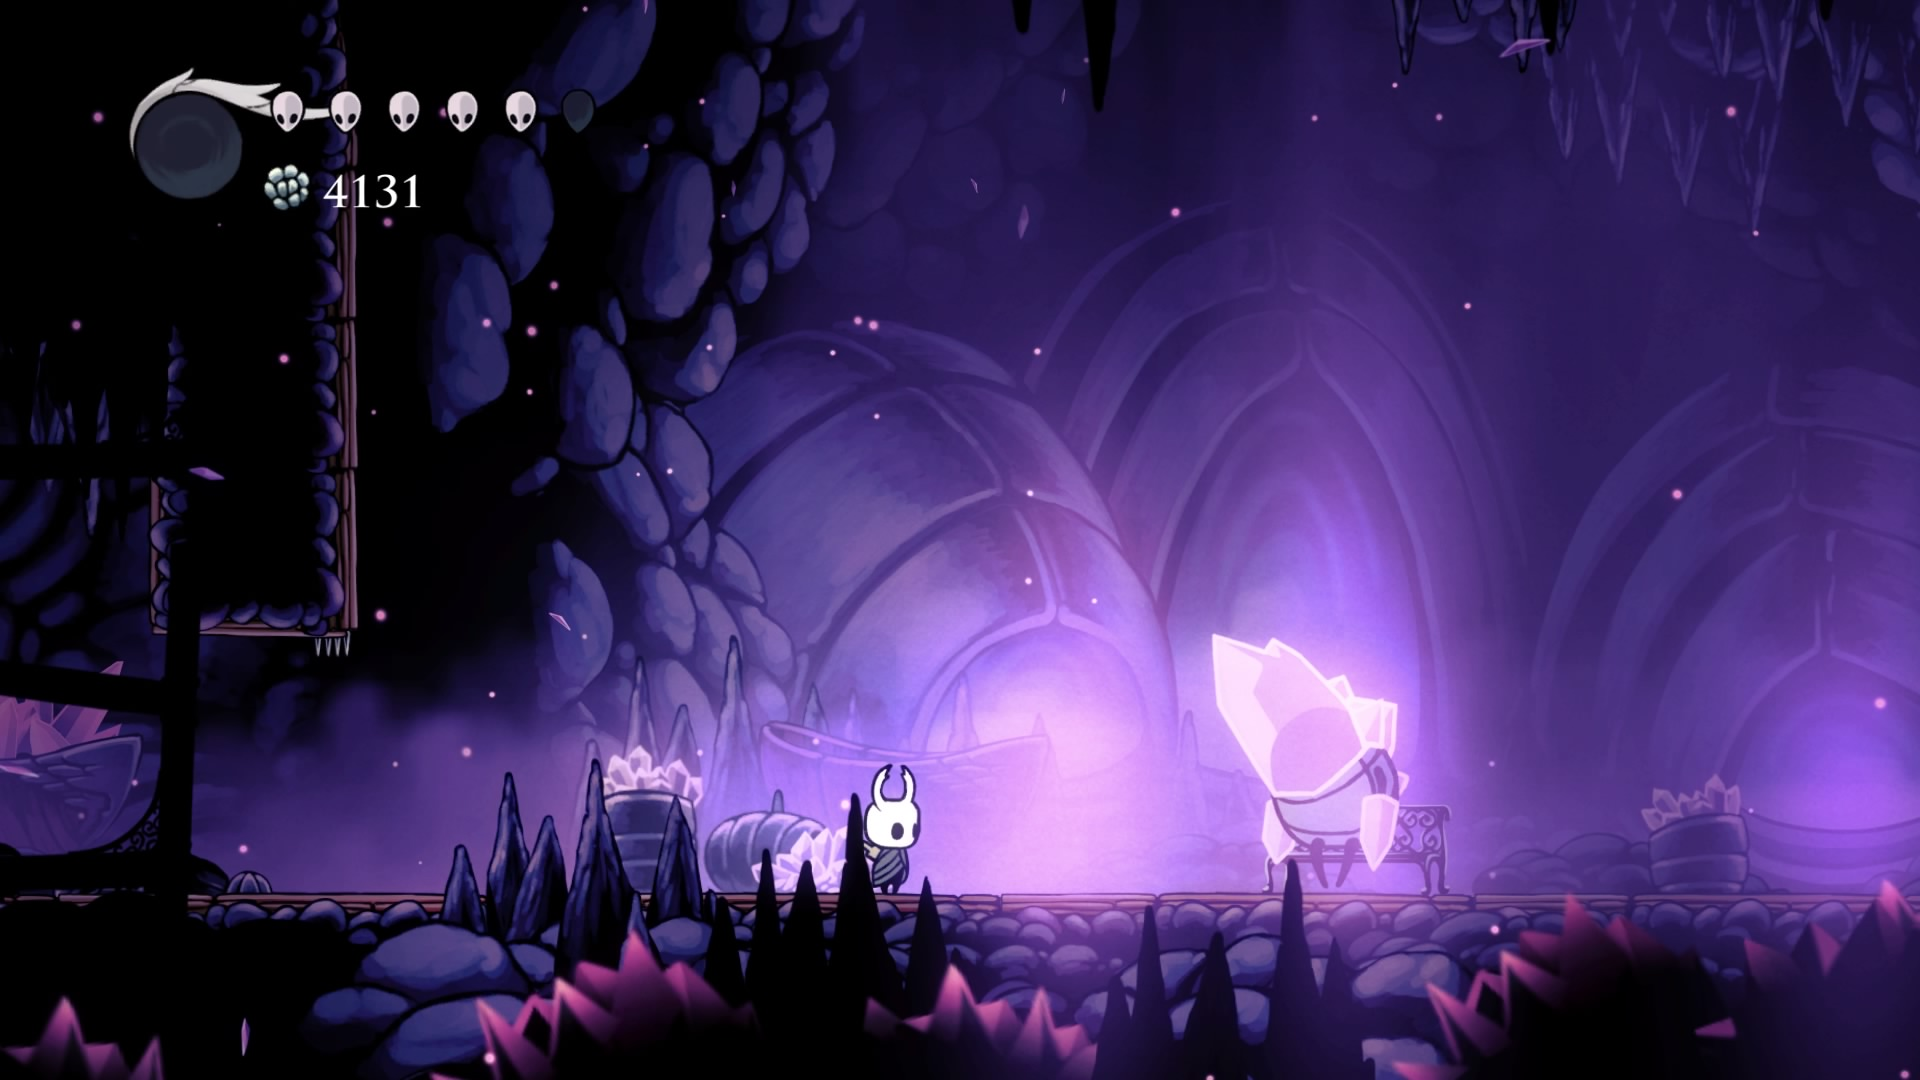 Hollow Knight 20200821162028 - Hollow Knight, guida e lore: Picco di Cristallo I